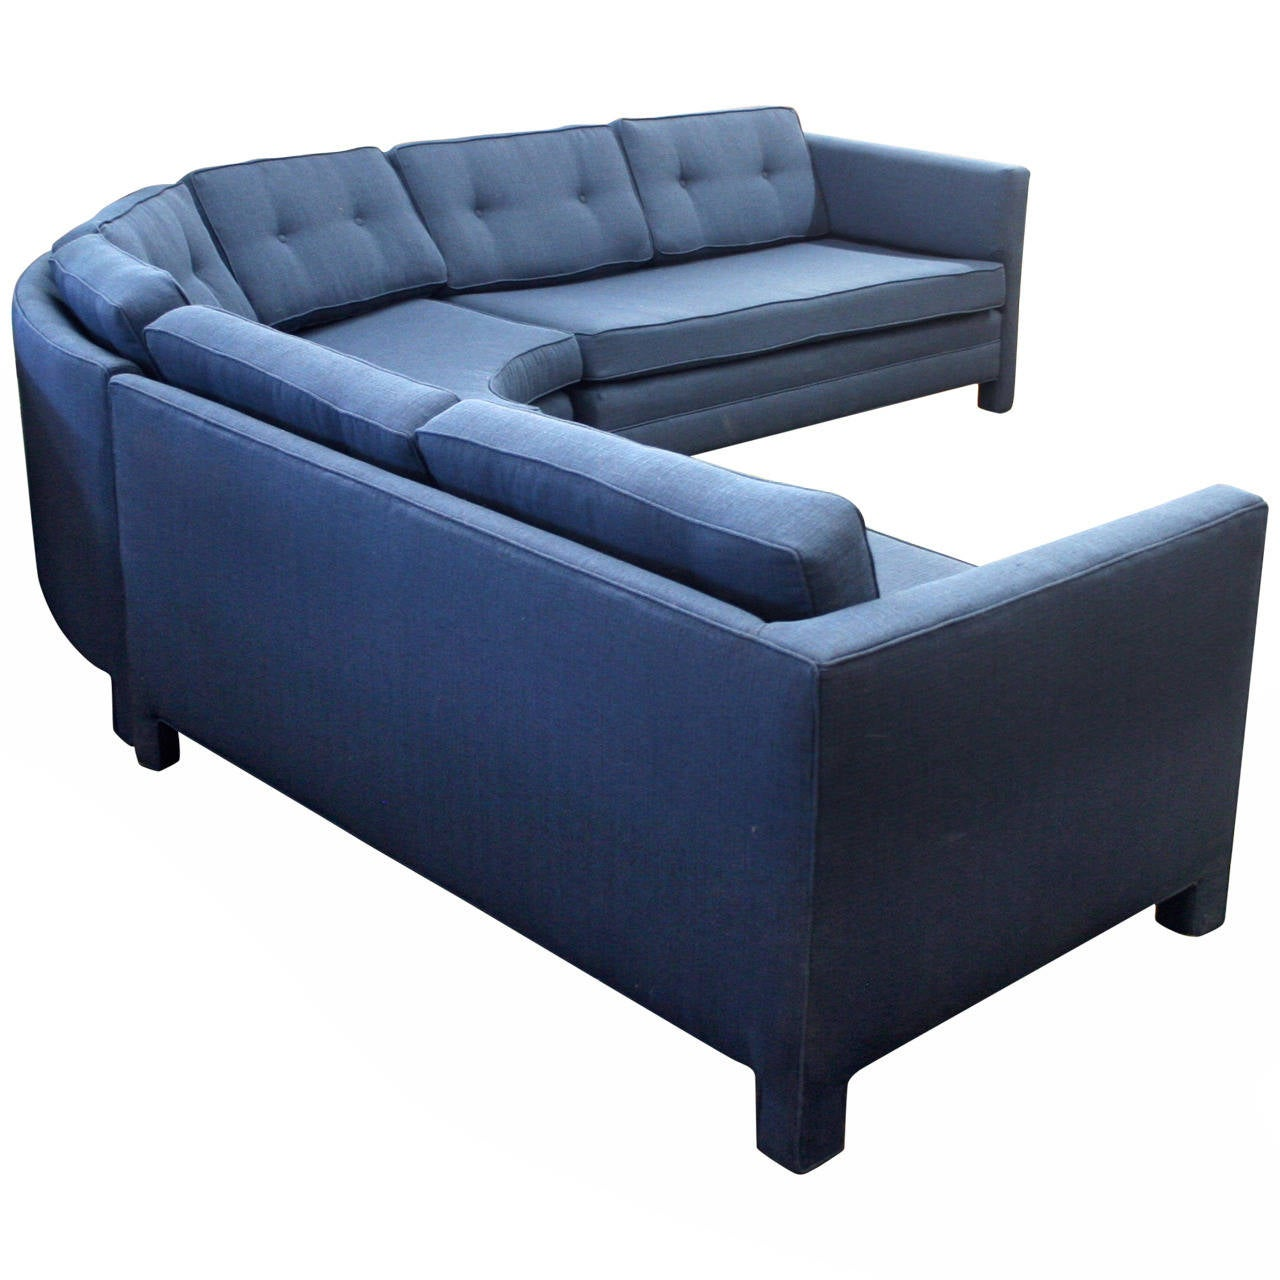 Three piece curved parsons style sectional sofa circa for 3 piece small sectional sofa